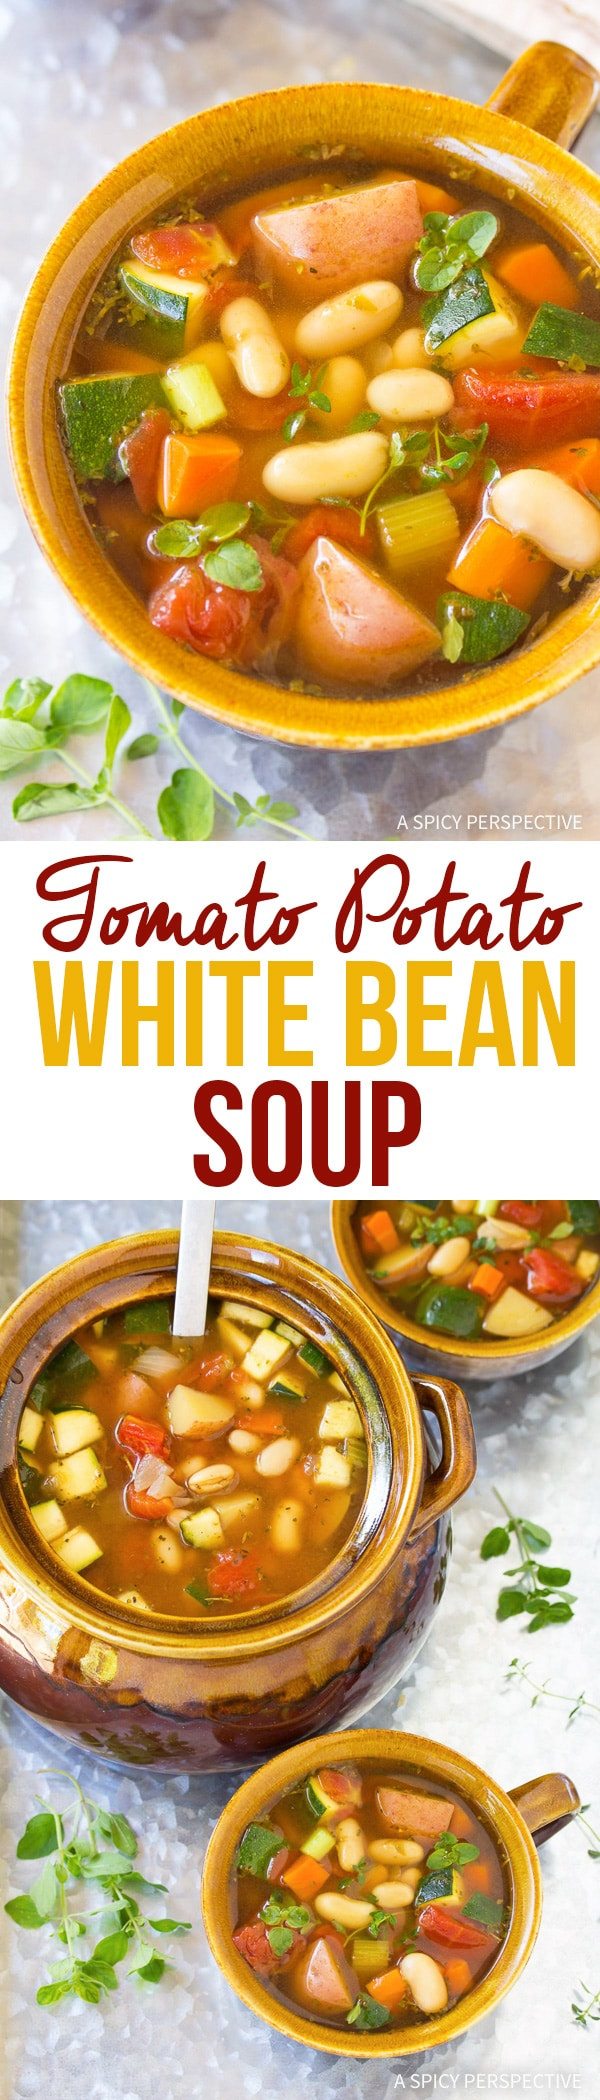 Healthy Tomato Potato White Bean Soup Recipe